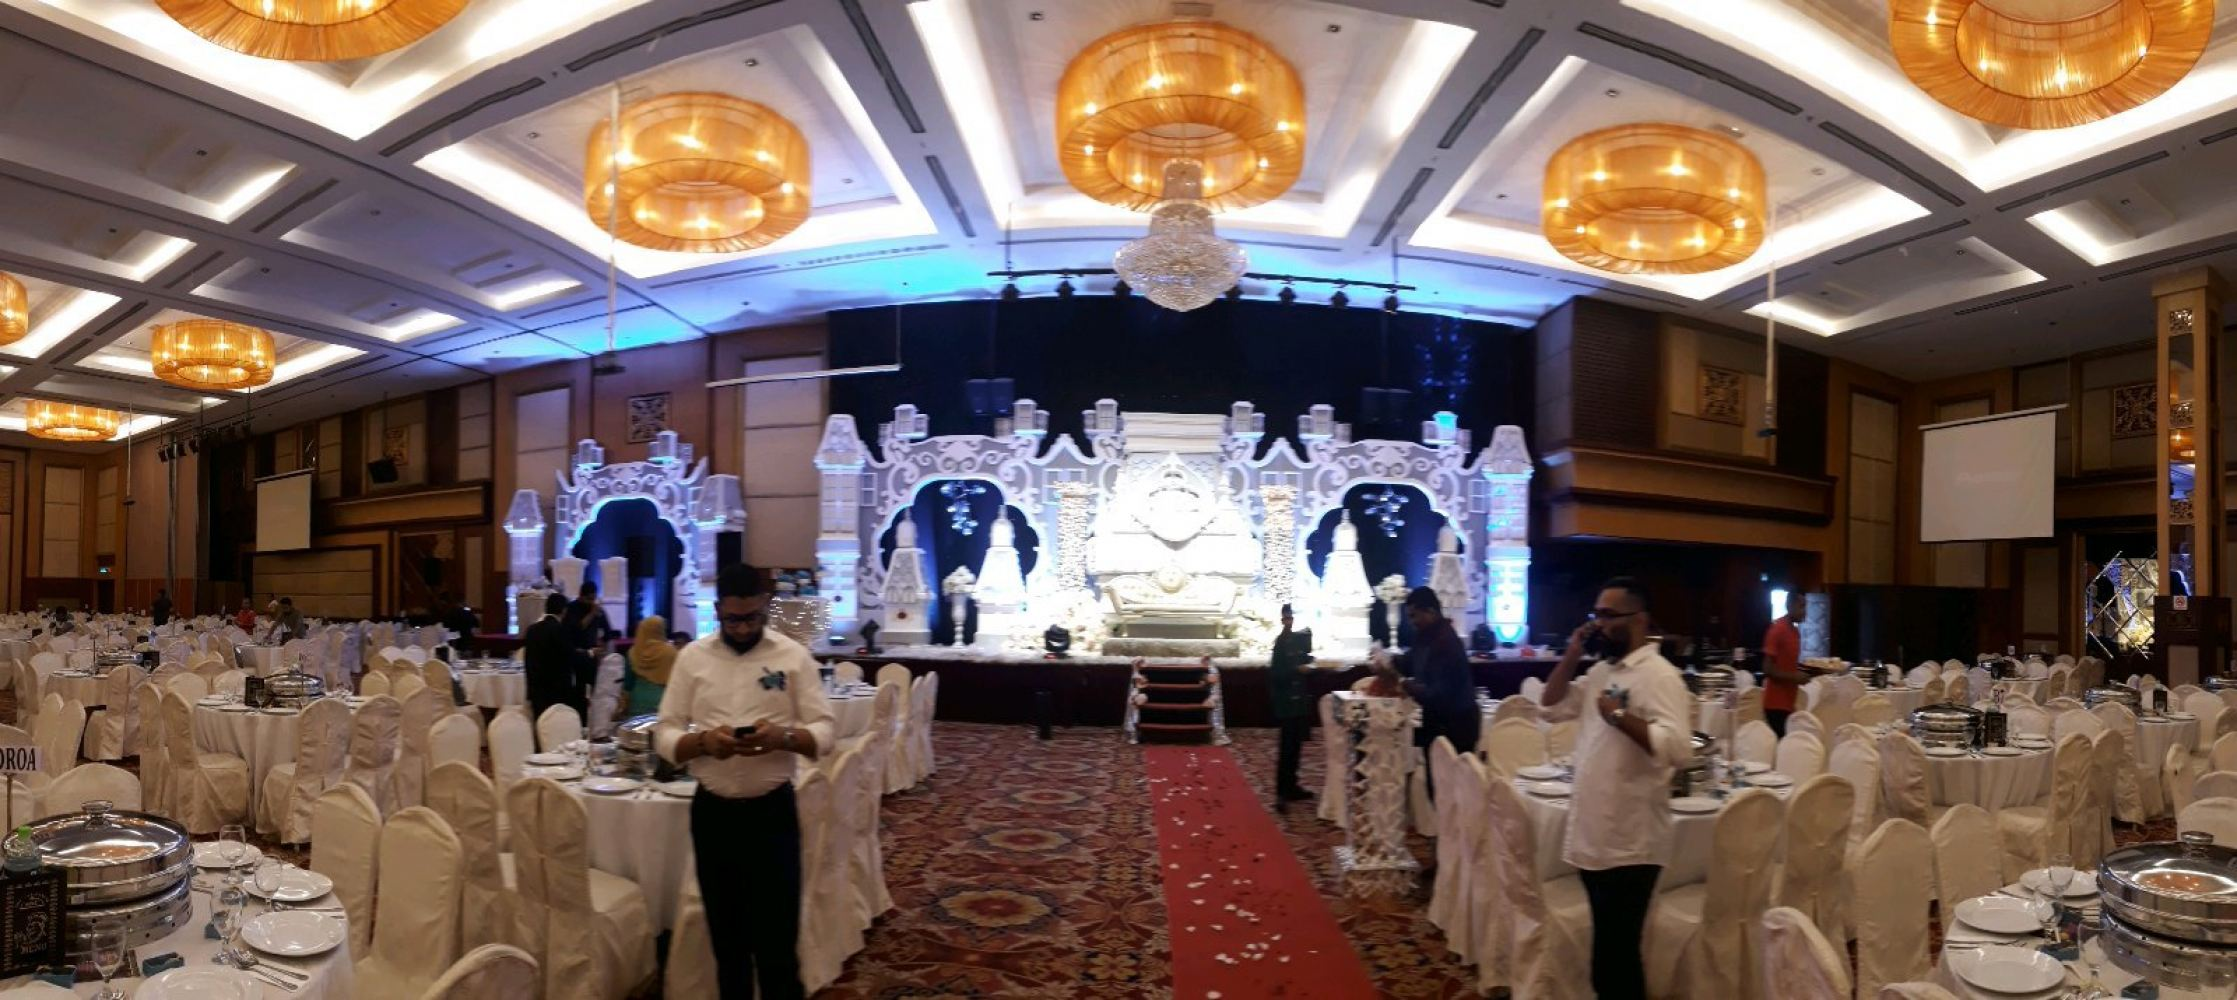 event at Ideal Convention Centre (IDCC Selayang)